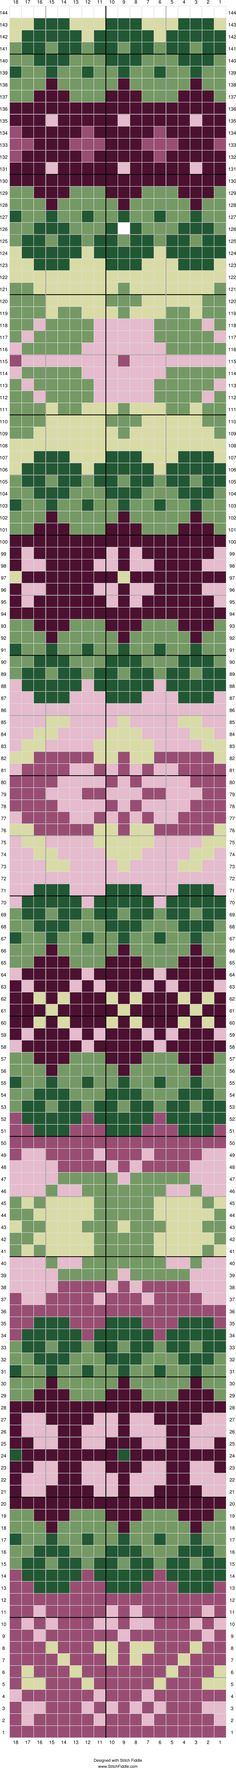 Stitch Fiddle is an online crochet, knitting and cross stitch pattern maker. - Stitch Fiddle is an online crochet, knitting and cross stitch pattern maker. Fair Isle Knitting Patterns, Knitting Charts, Loom Patterns, Knitting Stitches, Stitch Patterns, Sock Knitting, Vintage Knitting, Free Knitting, Knitting Machine